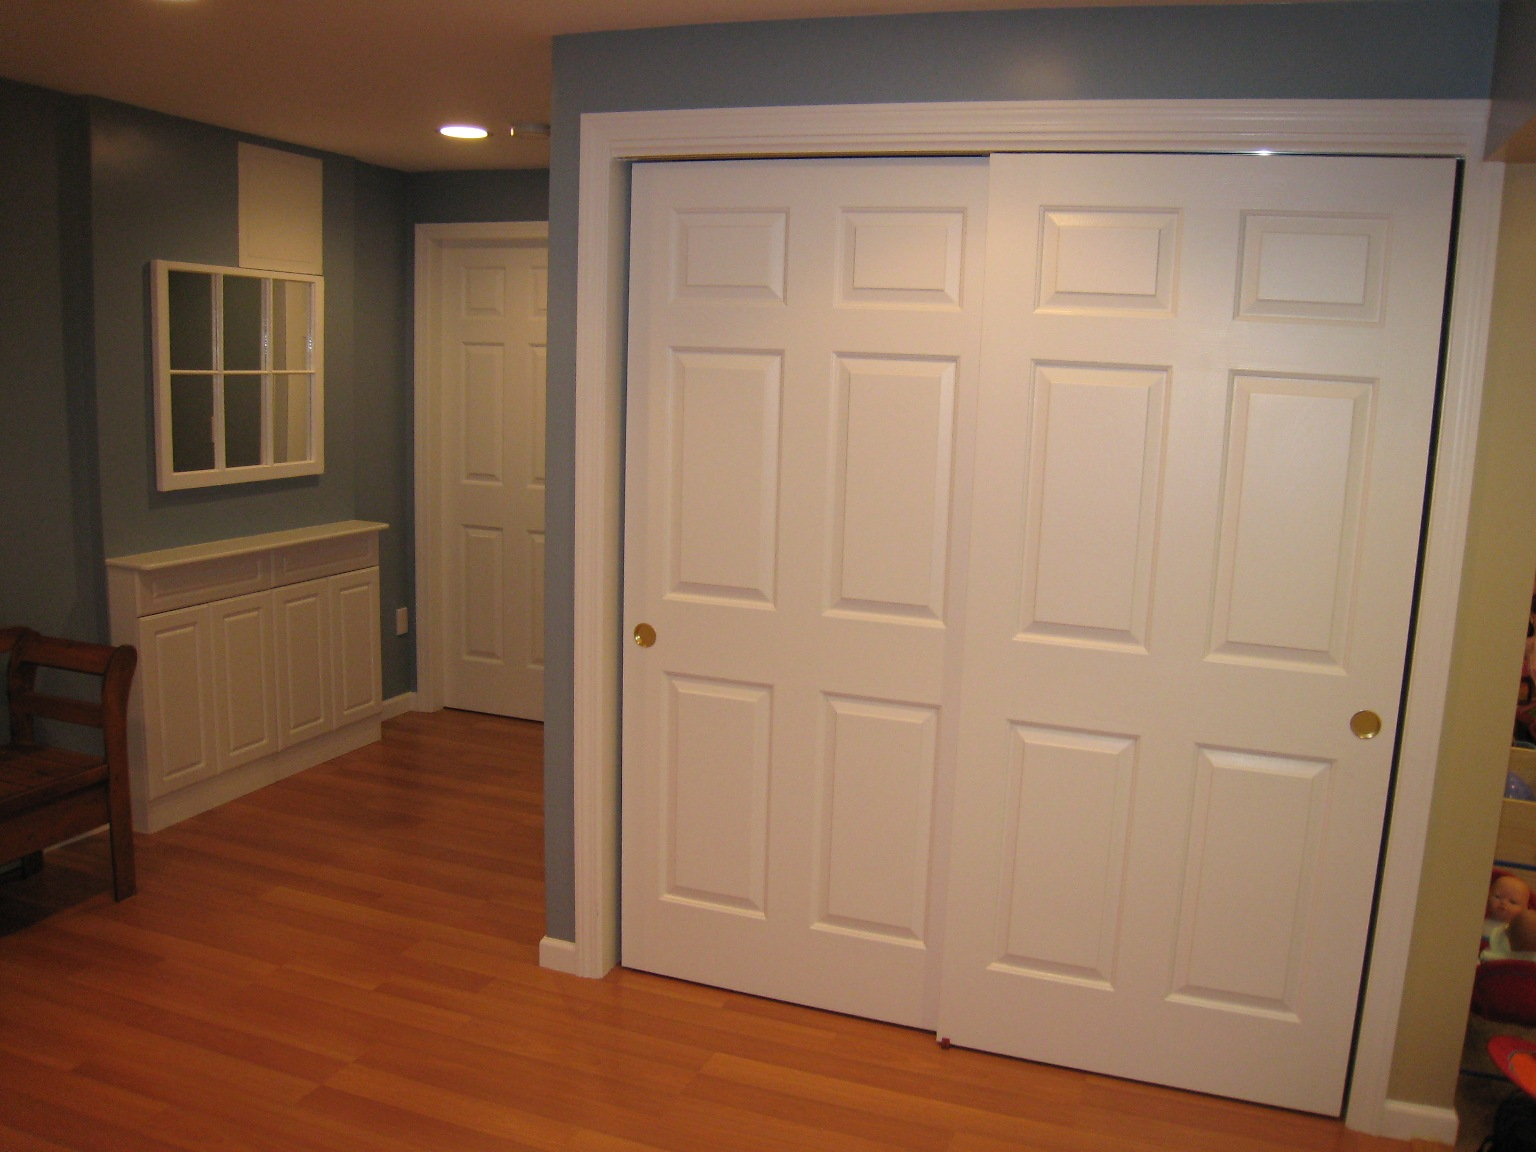 8 foot interior sliding closet doors will separate your room from the walkin closet